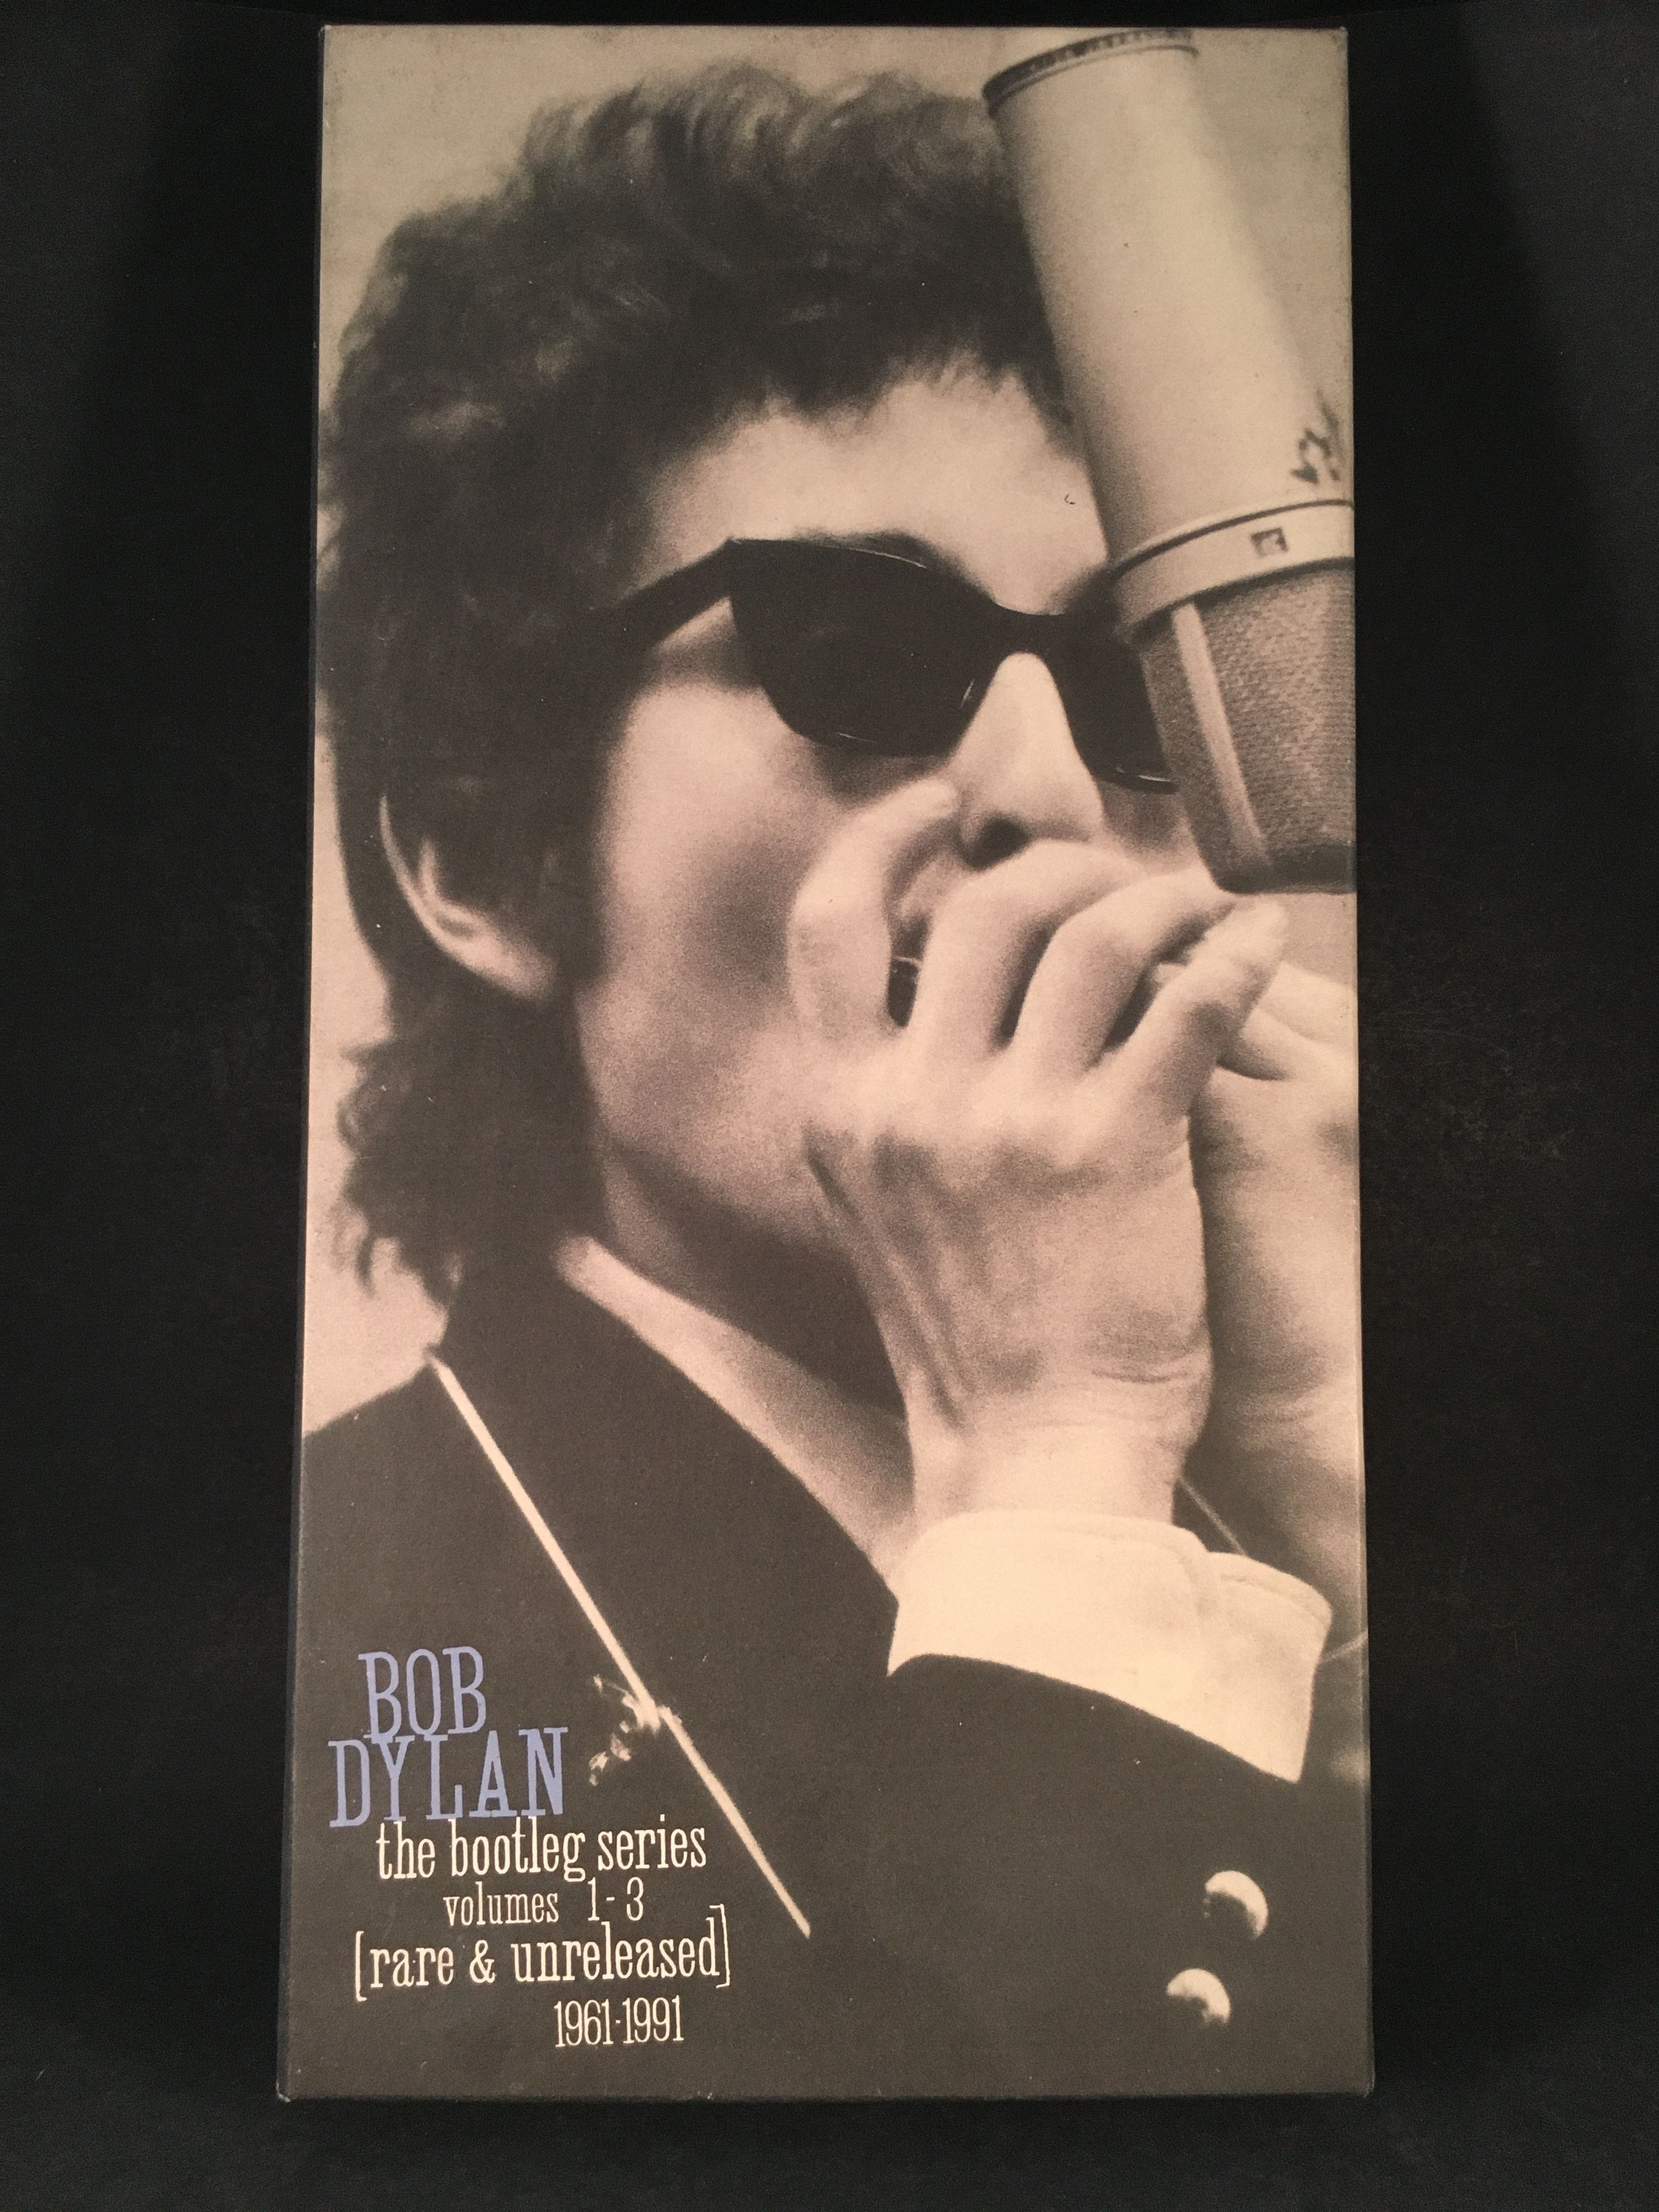 Bob Dylan The Bootleg Series Vol 1 3 Rare And Unreleased 1961 1991 Cassette Box Set Products Bob Dylan Lp Vinyl Bruce Springsteen